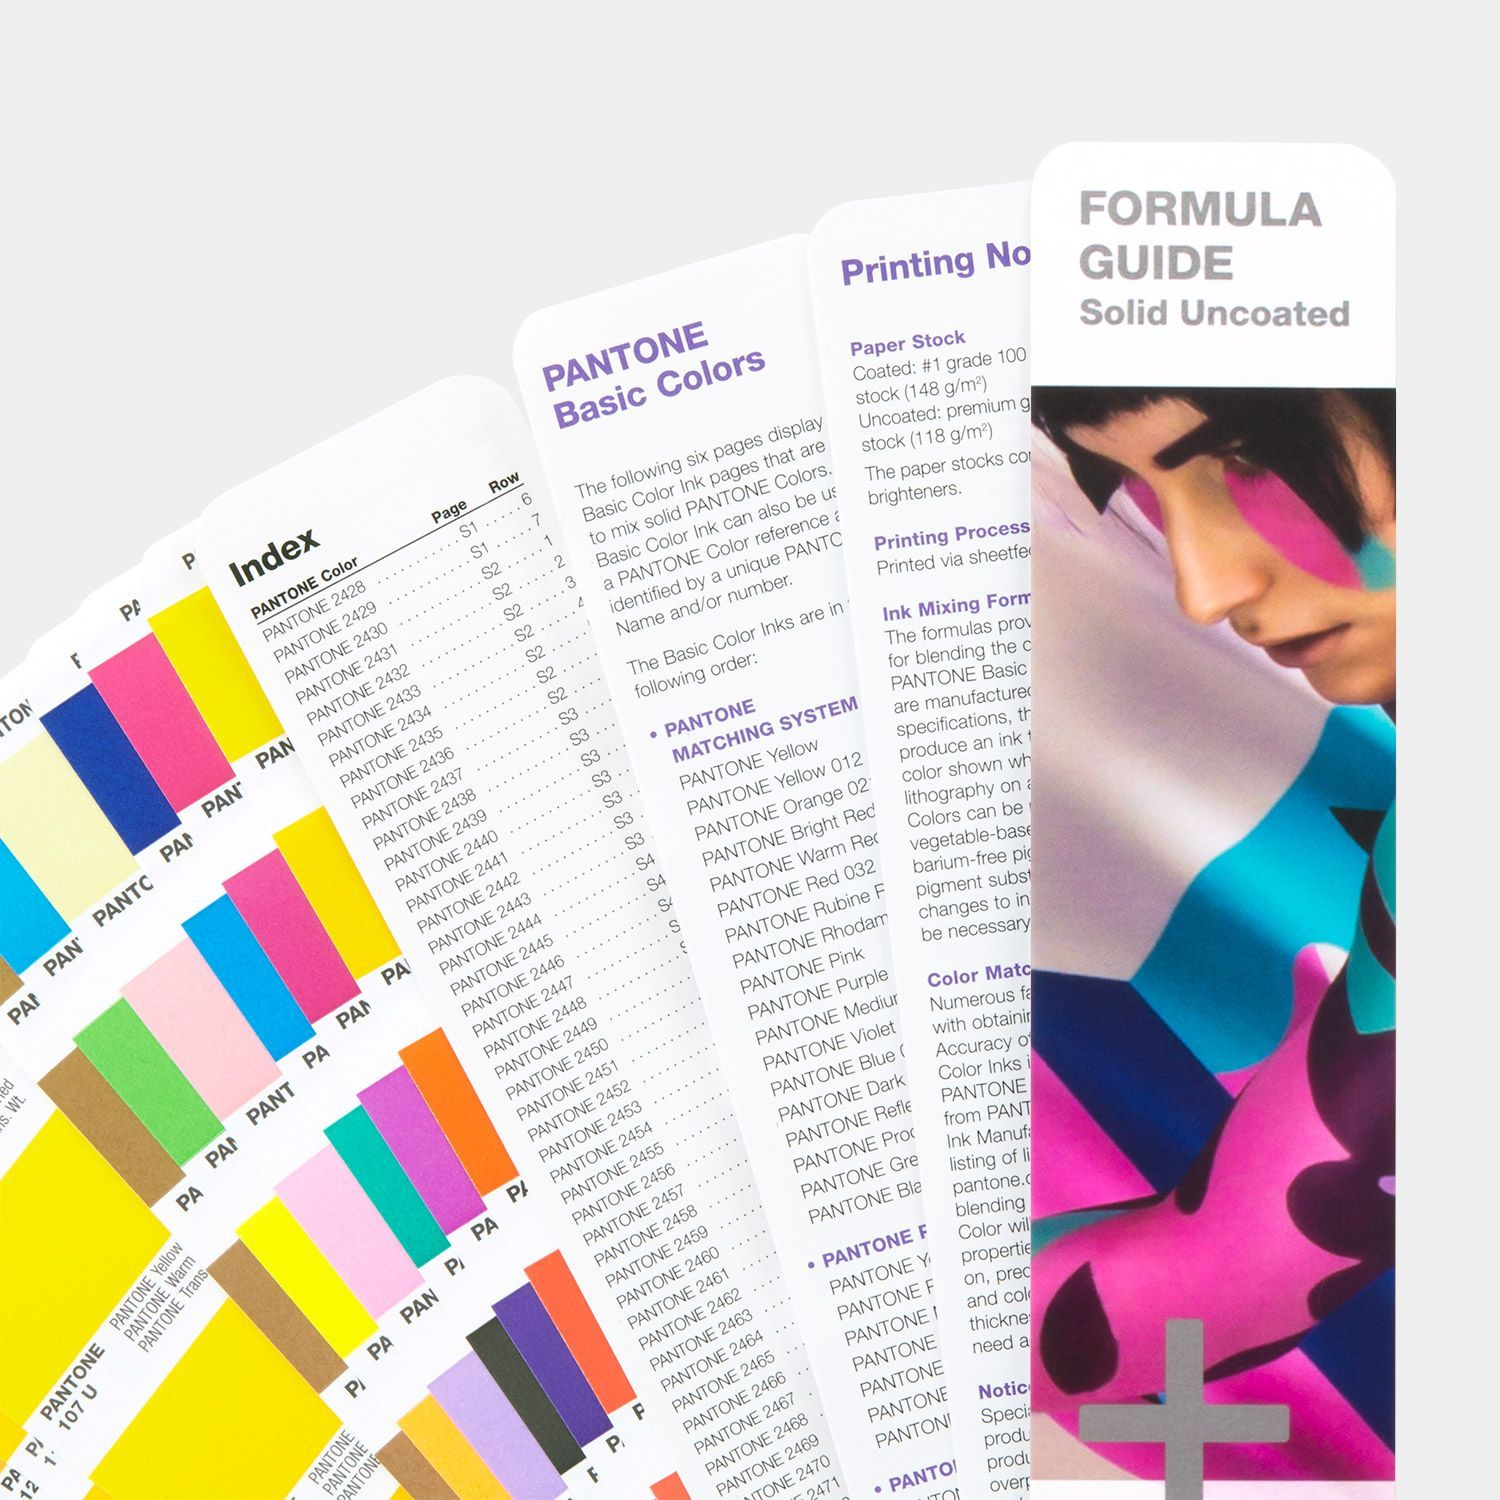 Pantone Color Book Uncoated Images